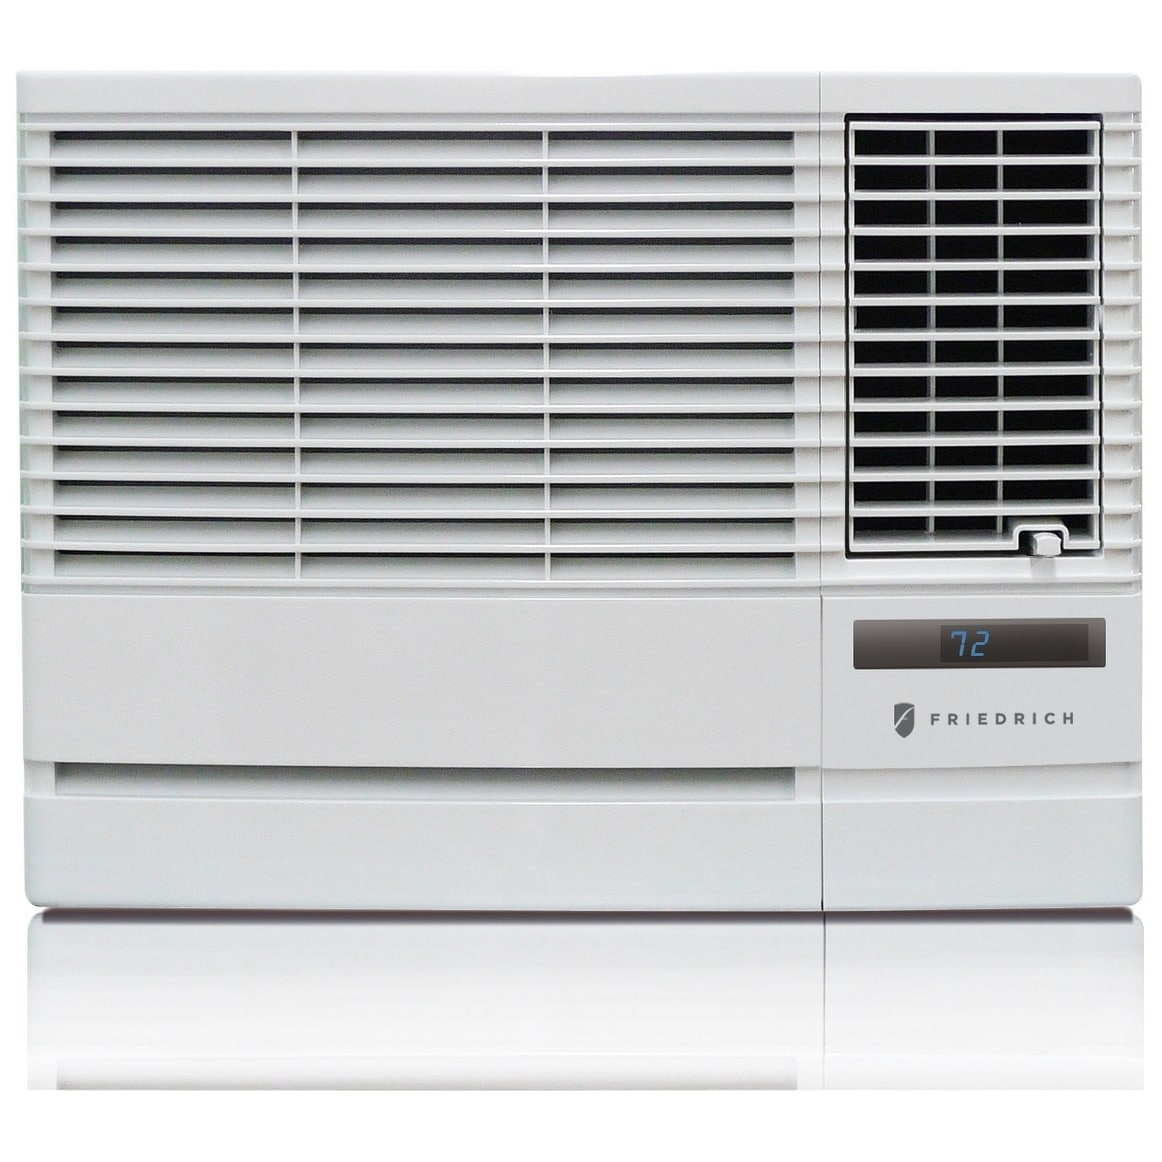 Friedrich Chill 8,000 BTU Room Air Conditioner 115V